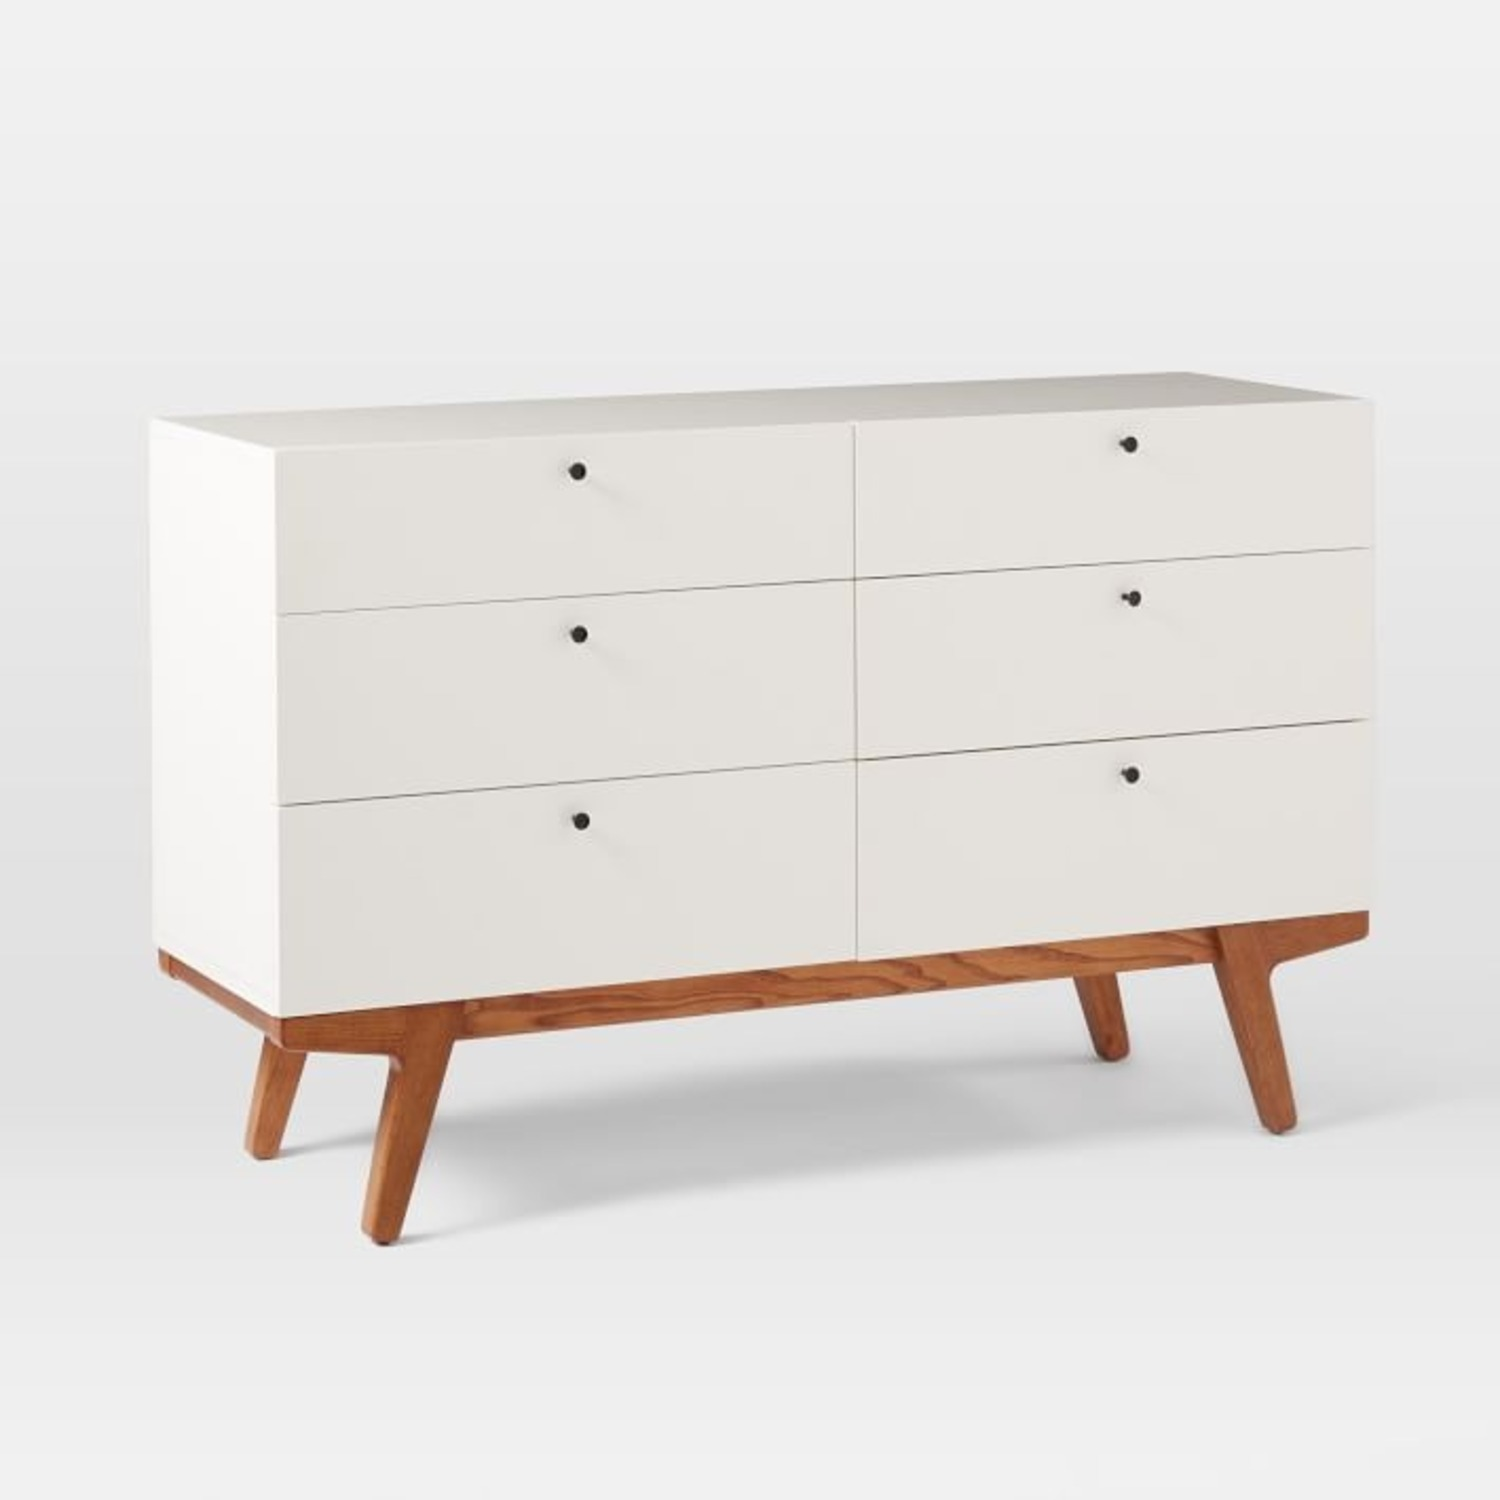 West Elm Modern 6-Drawer Dresser, White Lacquer - image-1